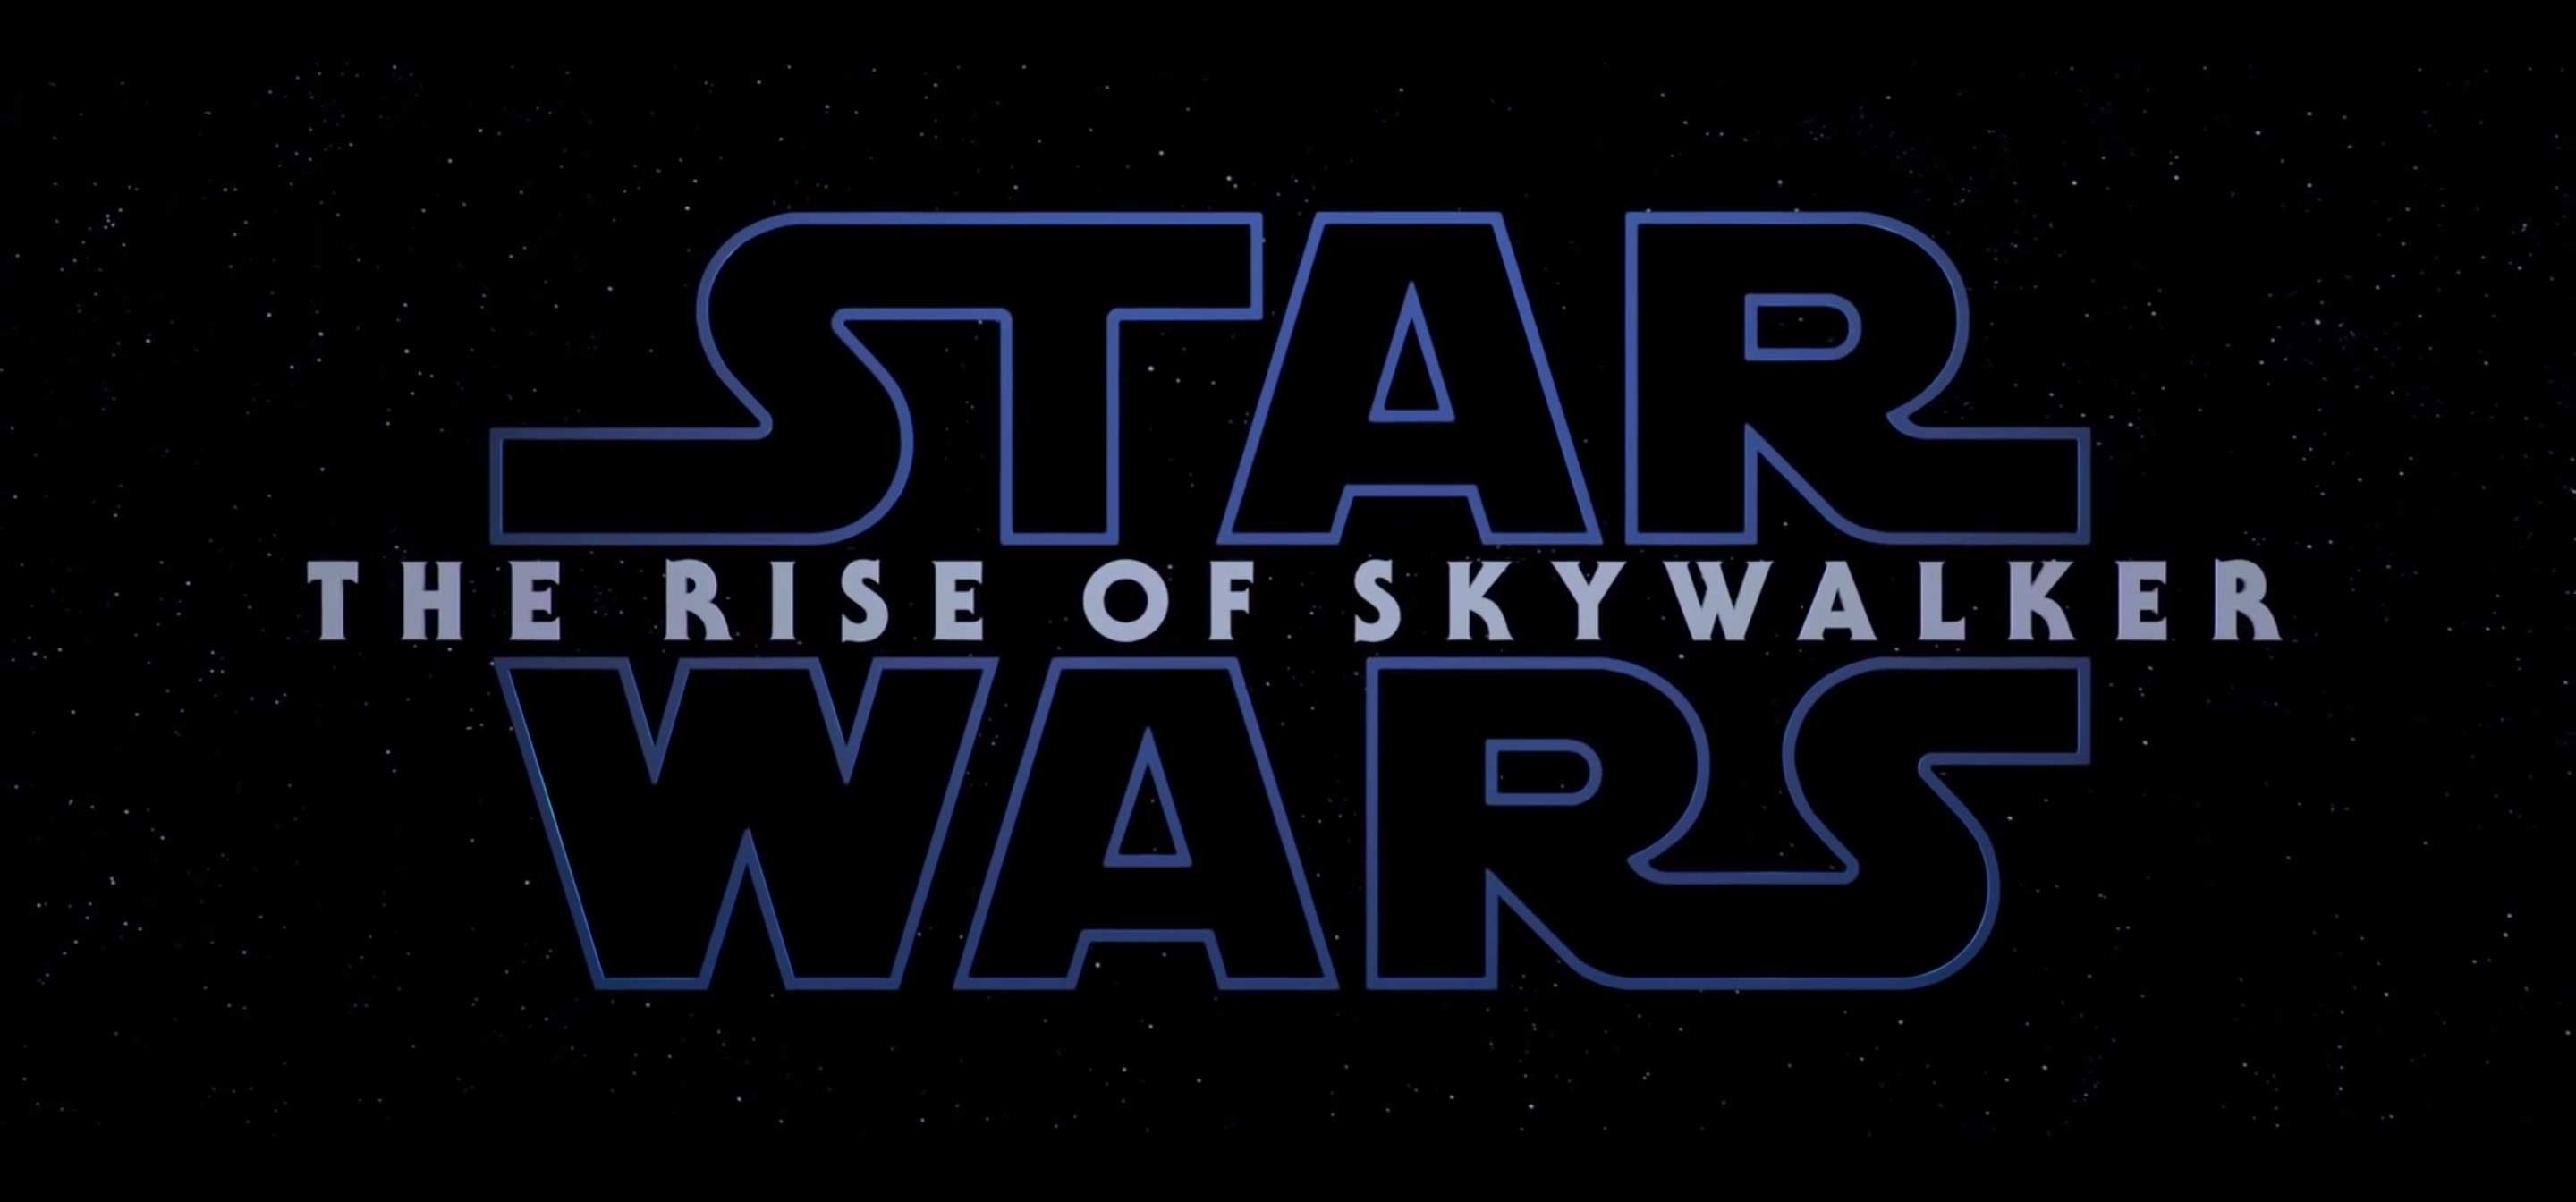 Star Wars Episode 9: This might change your perspective